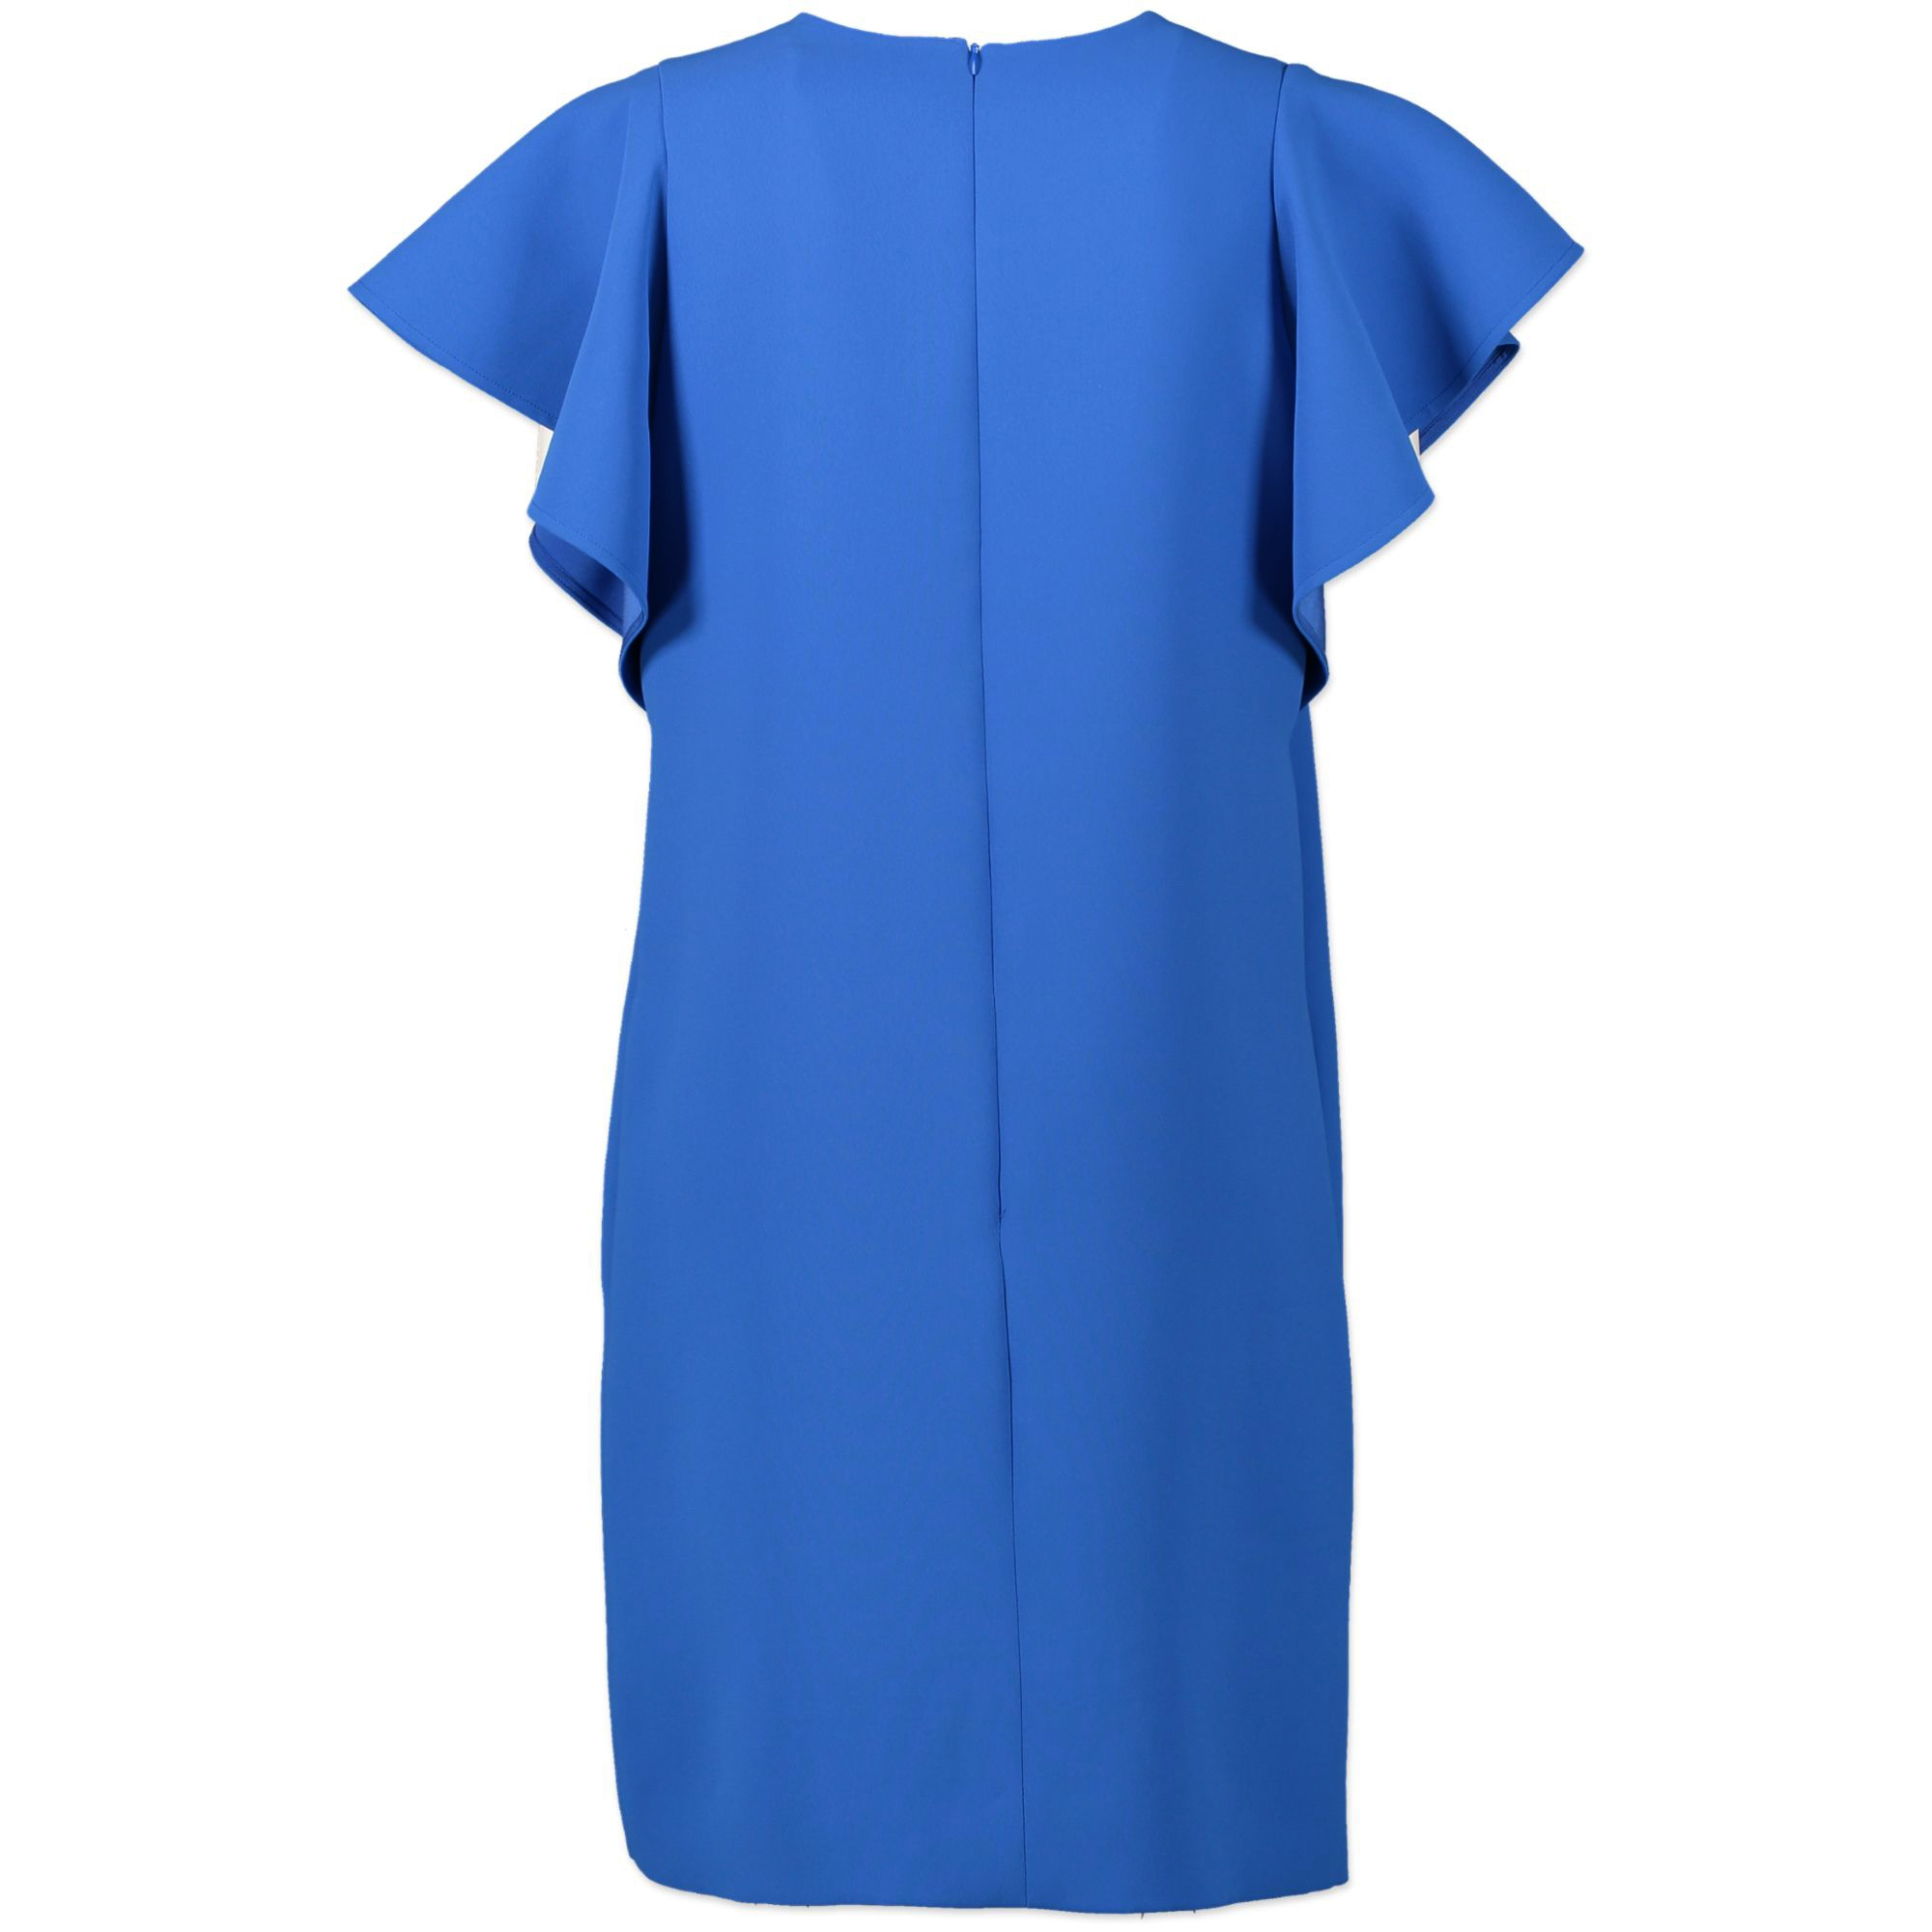 We buy and sell your authentic designer Victoria Beckham Cobalt Blue Dress